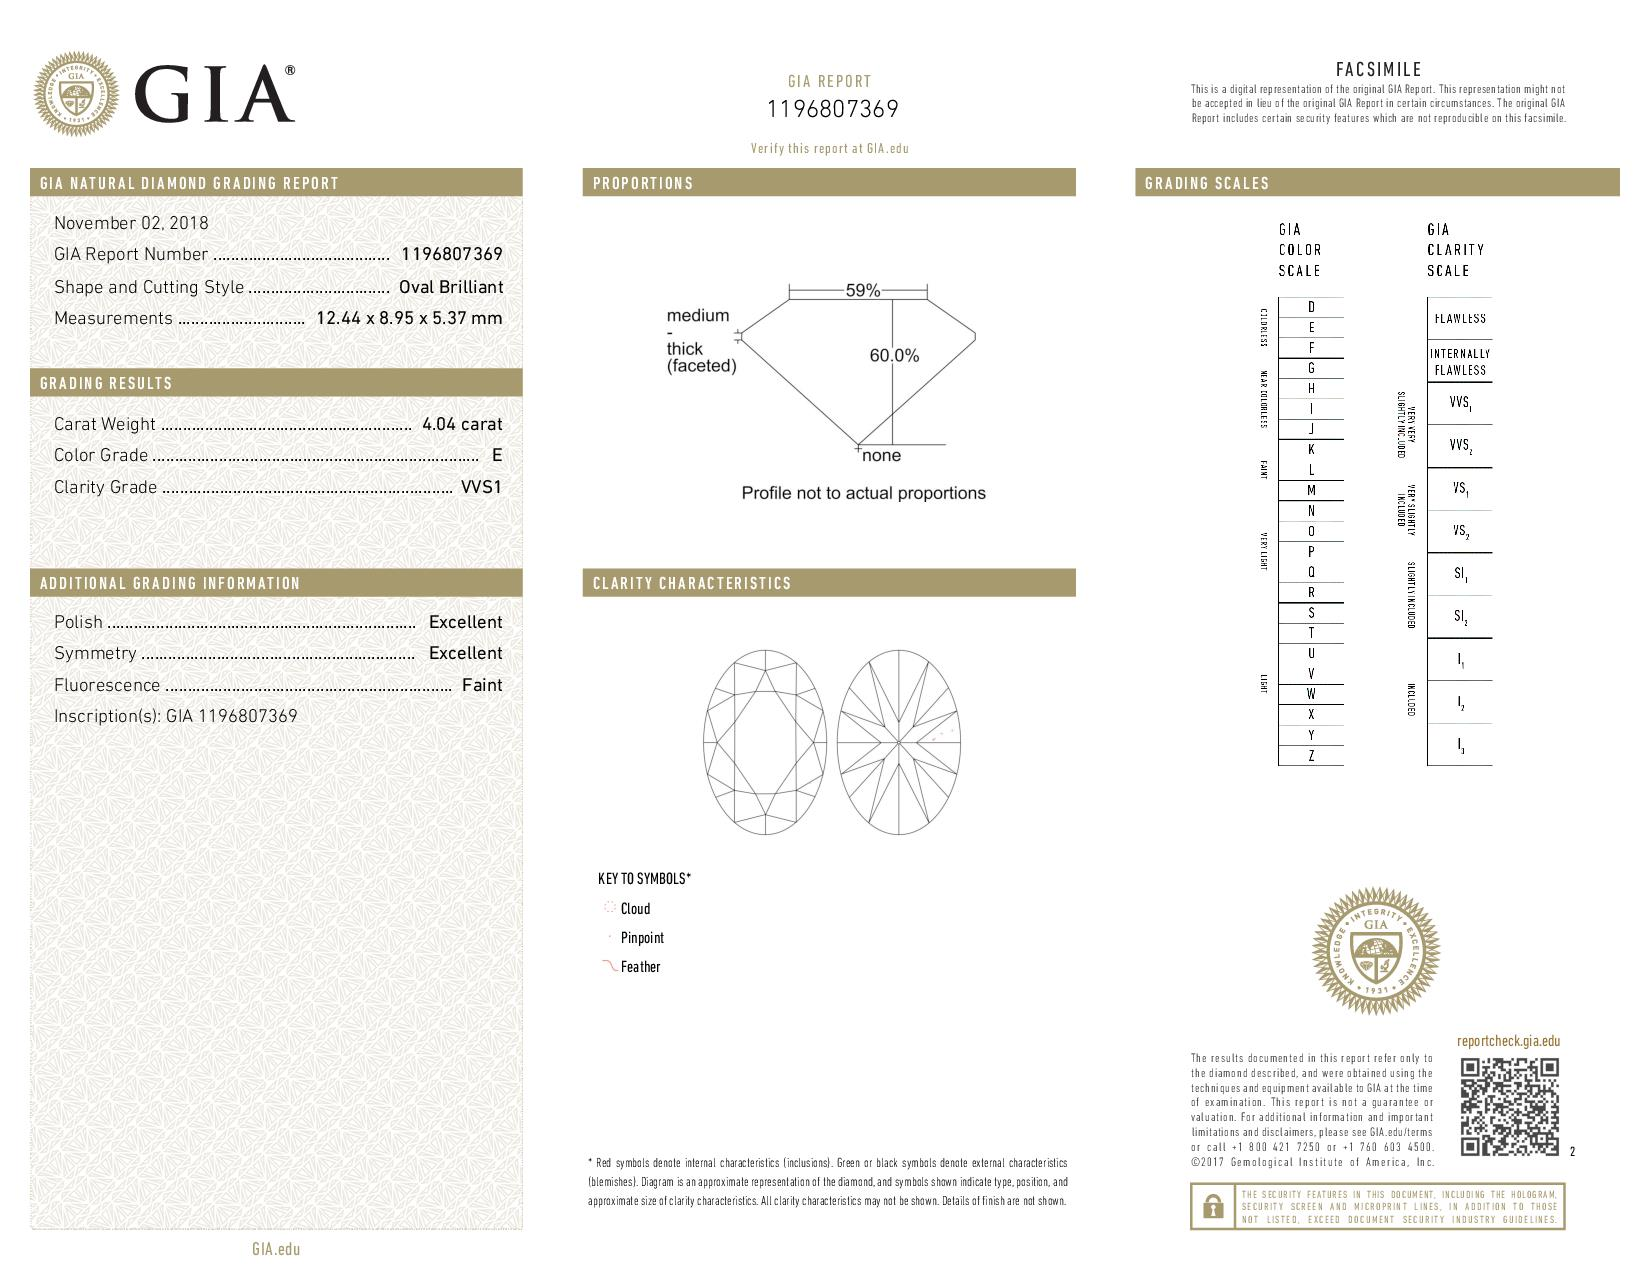 This is a 4.04 carat oval shape, E color, VVS1 clarity natural diamond accompanied by a GIA grading report.